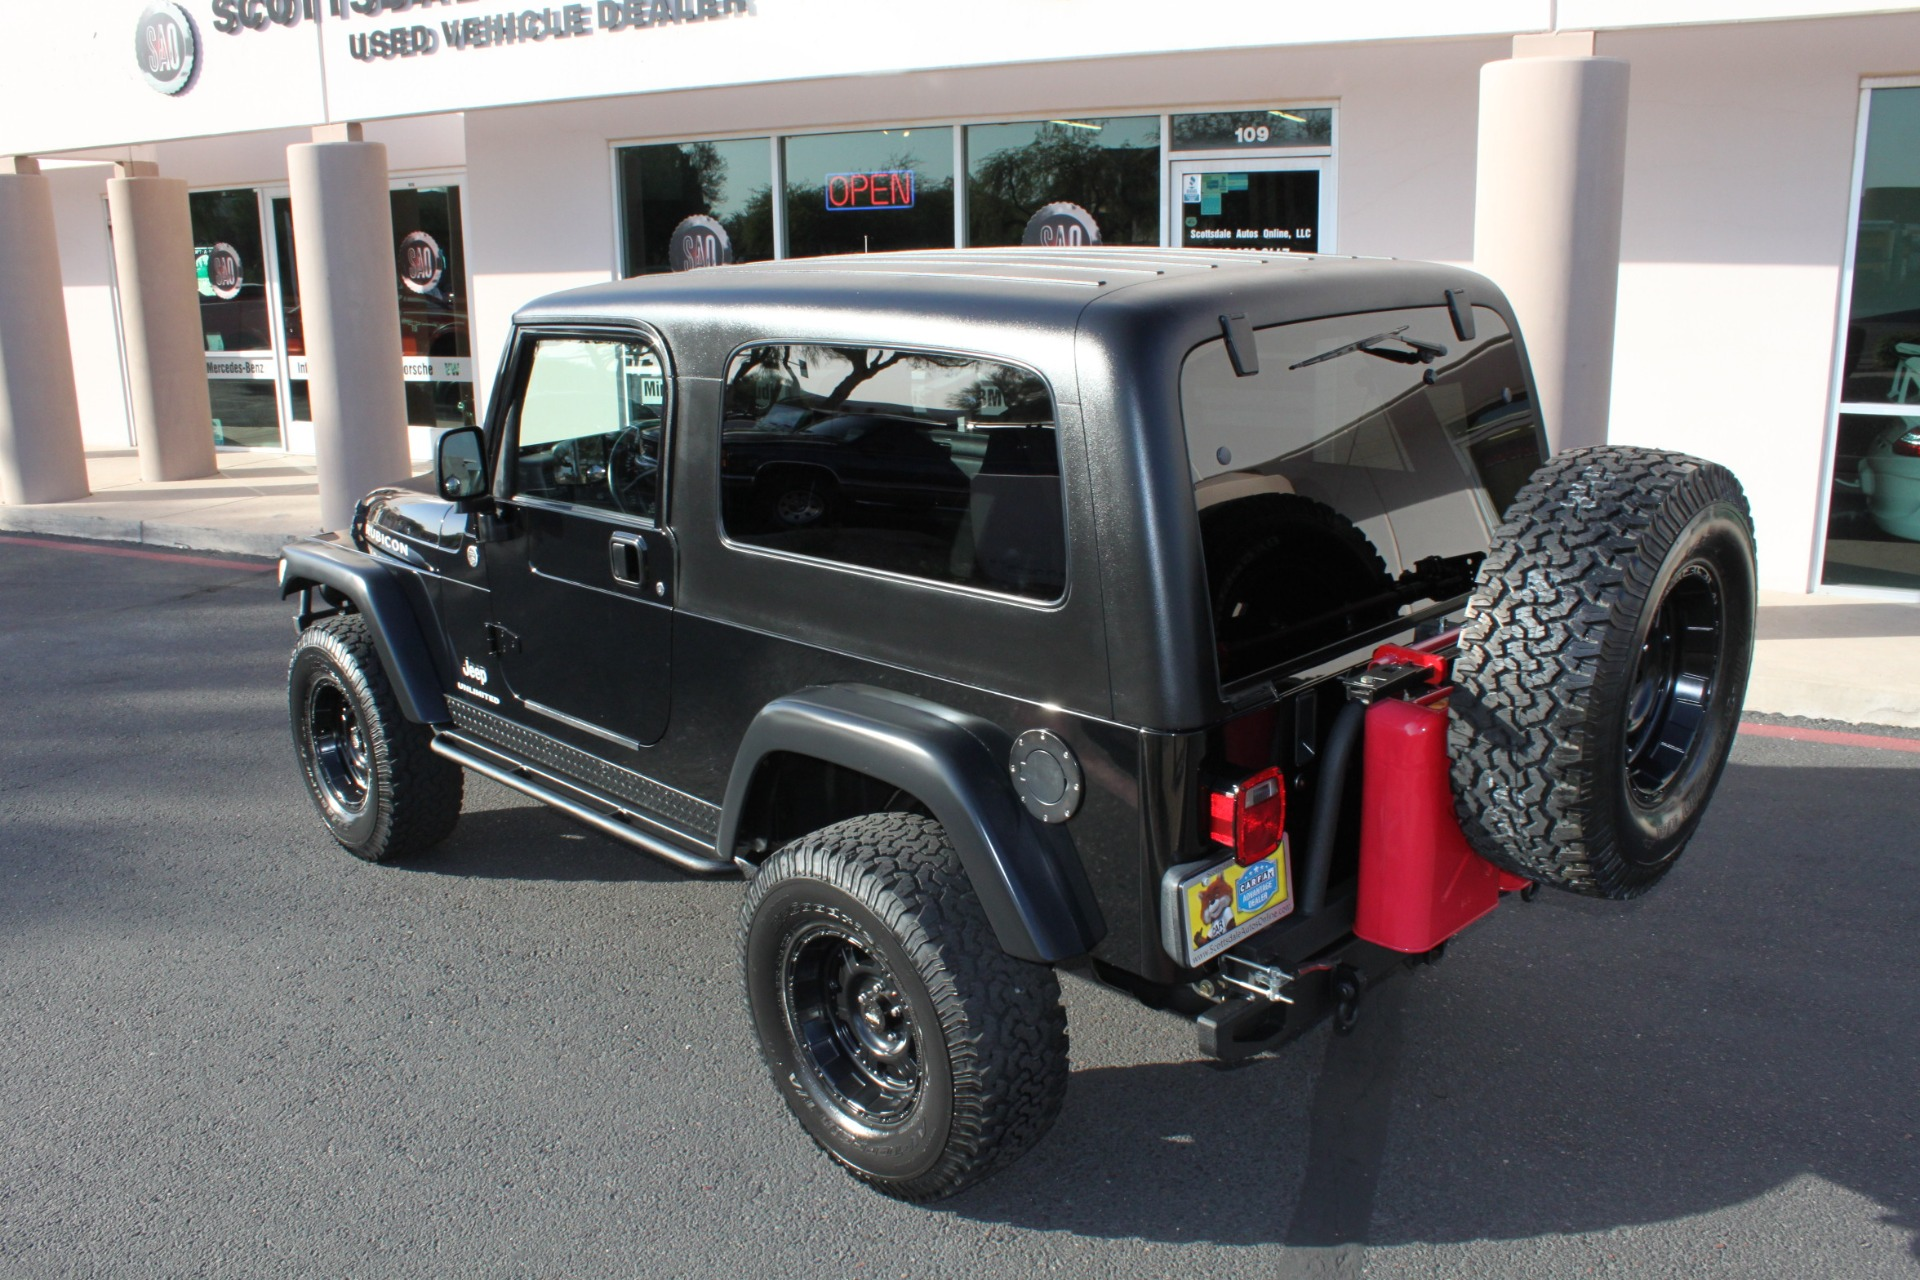 Used-2006-Jeep-Wrangler-Unlimited-Rubicon-LWB-Chevelle